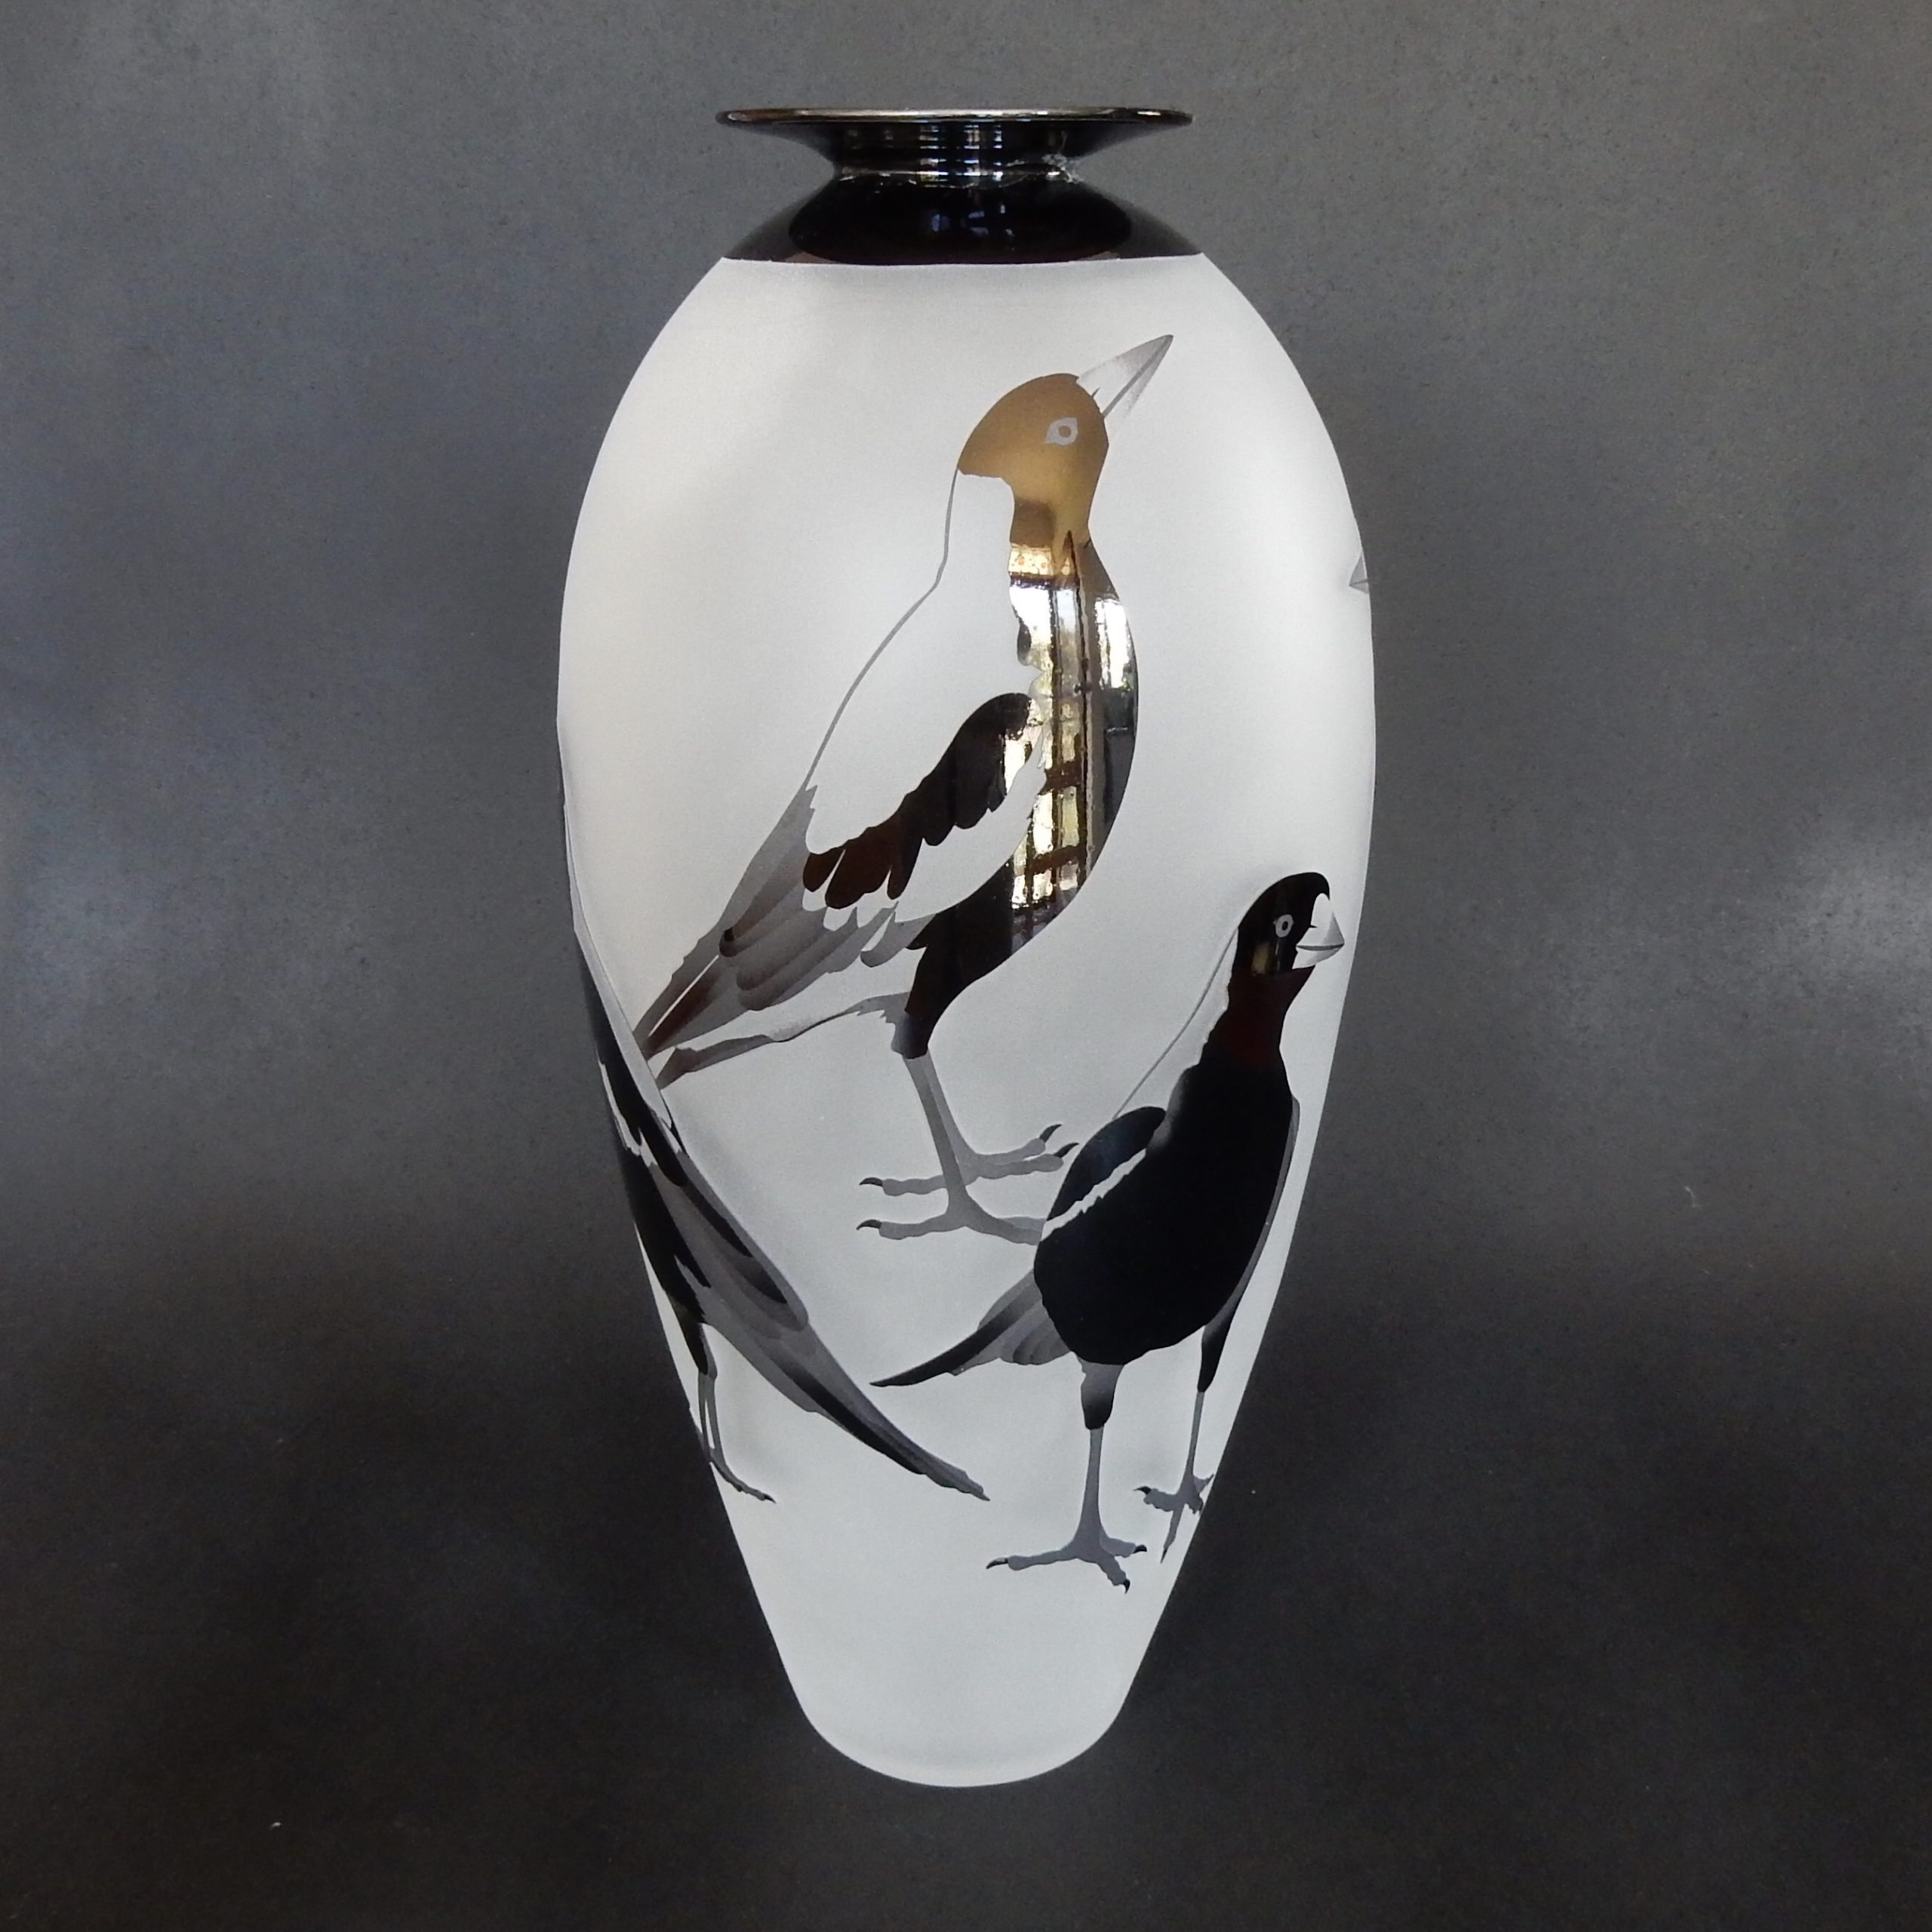 Magpies by Amanda Louden.